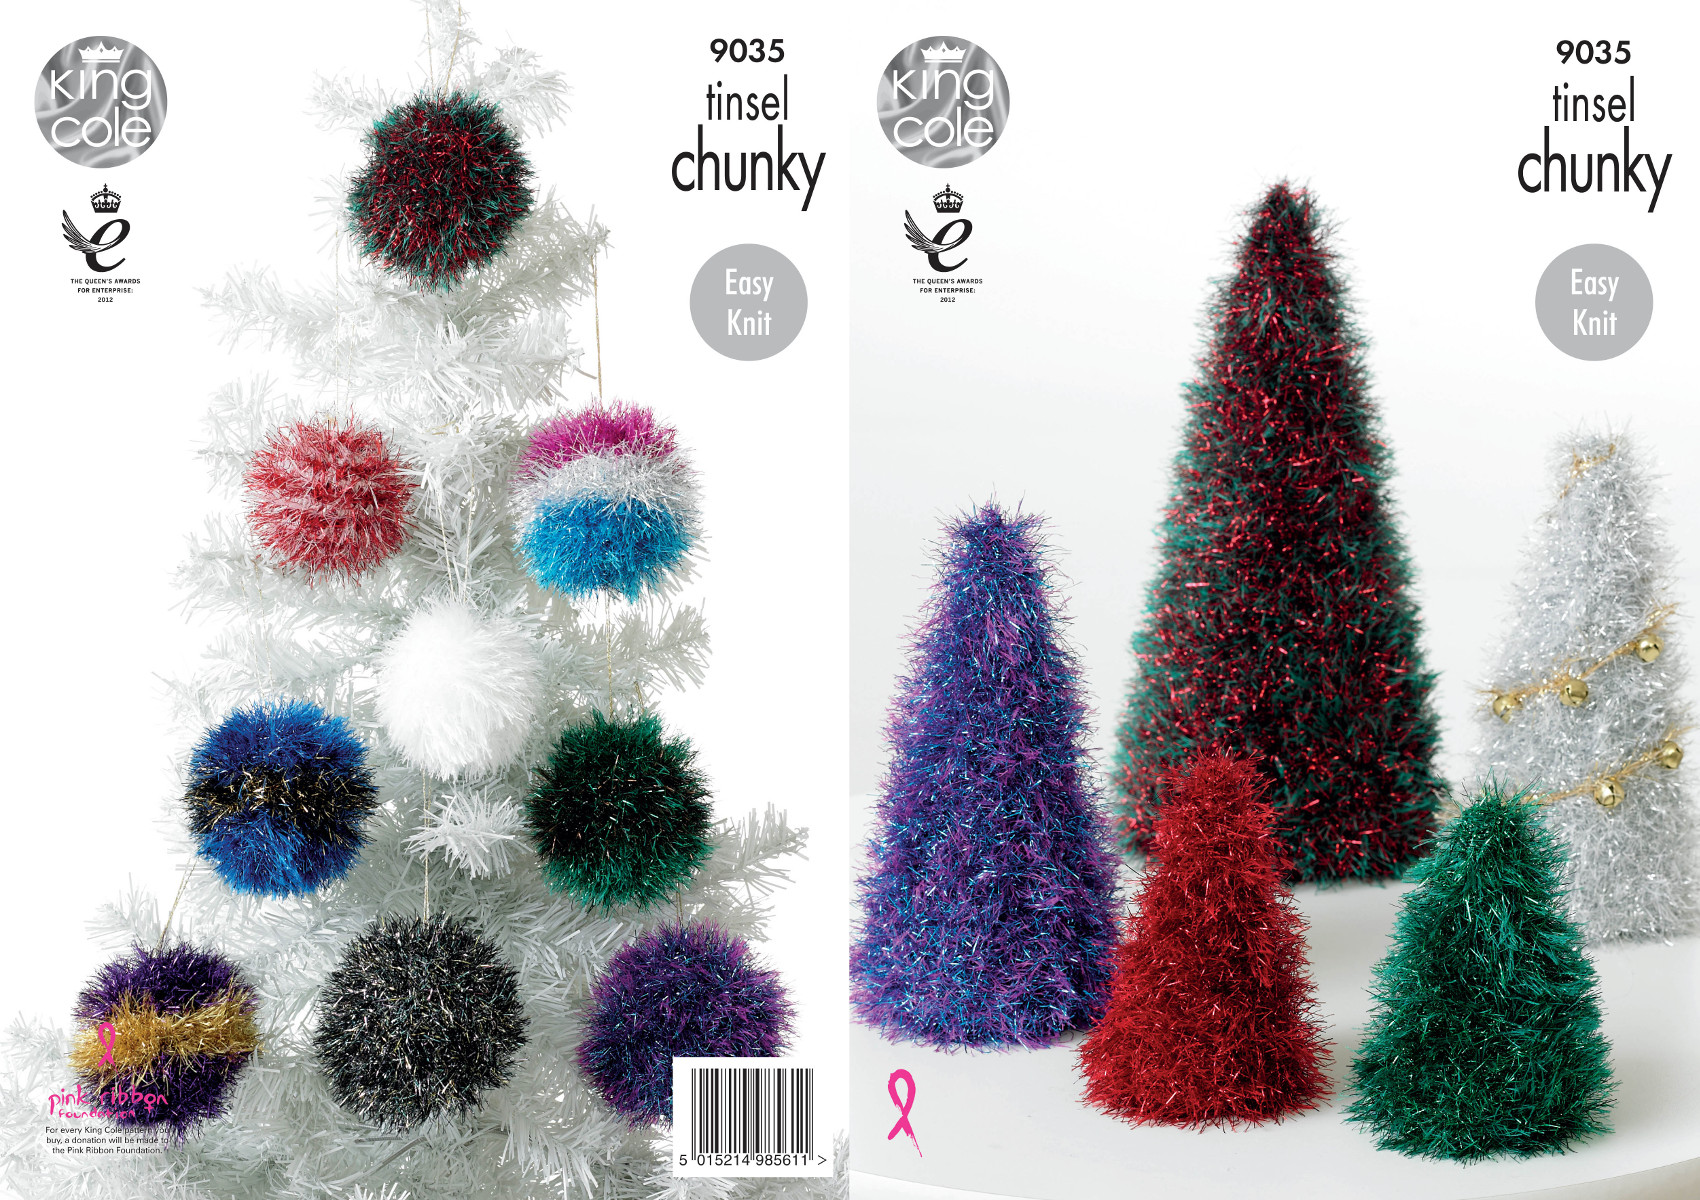 Knitting Patterns For King Cole Tinsel : King Cole Tinsel Chunky Decorations Knitting Pattern Christmas Tree Baubles 9...